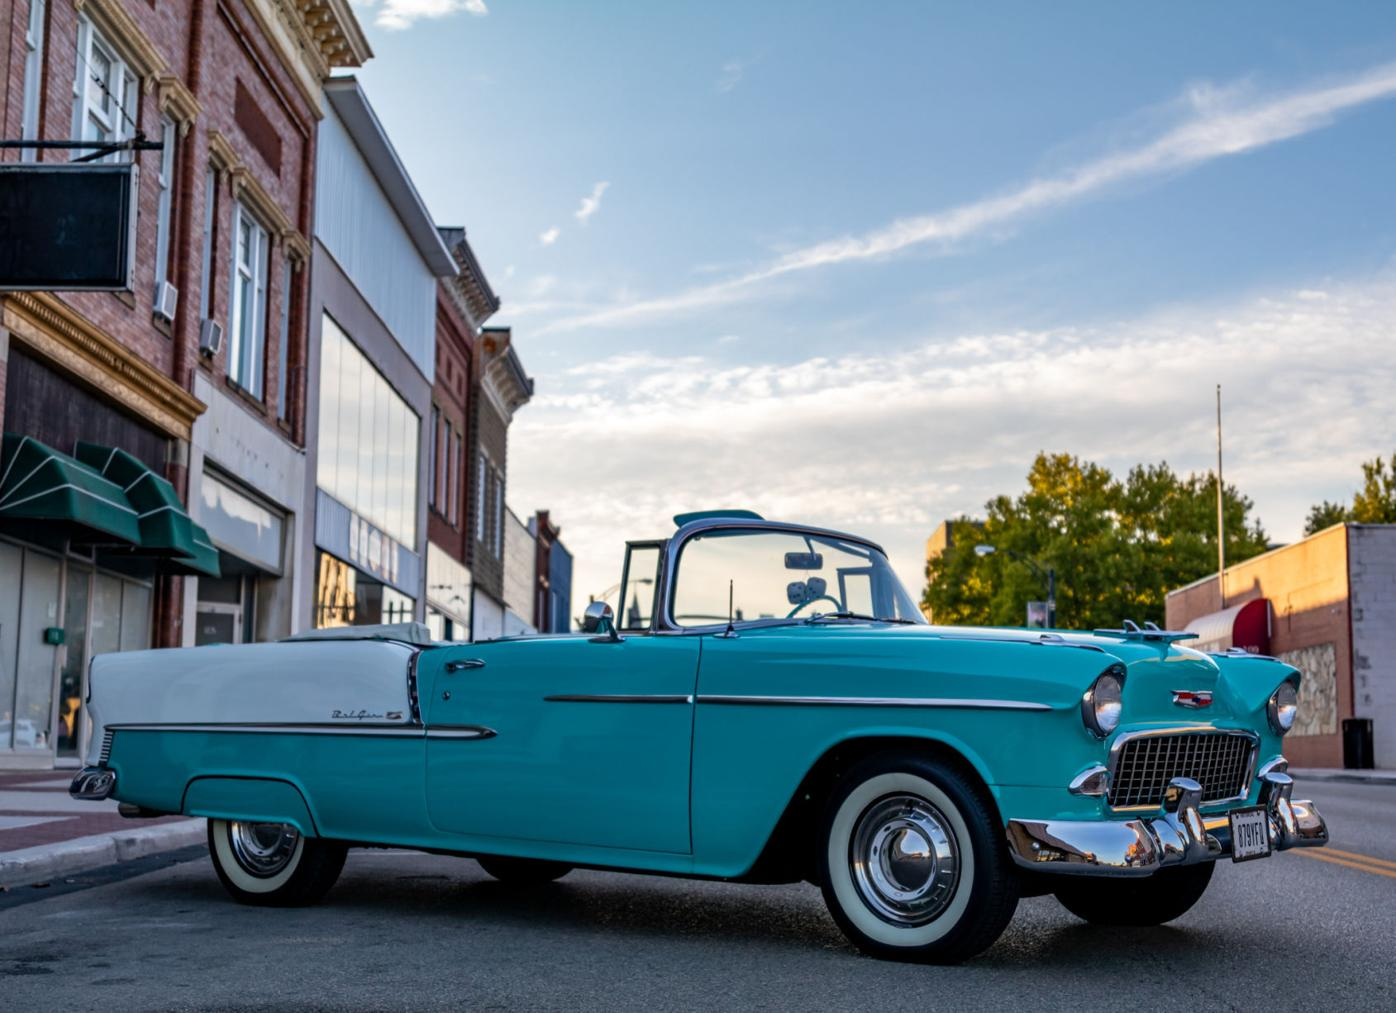 Classic vehicle